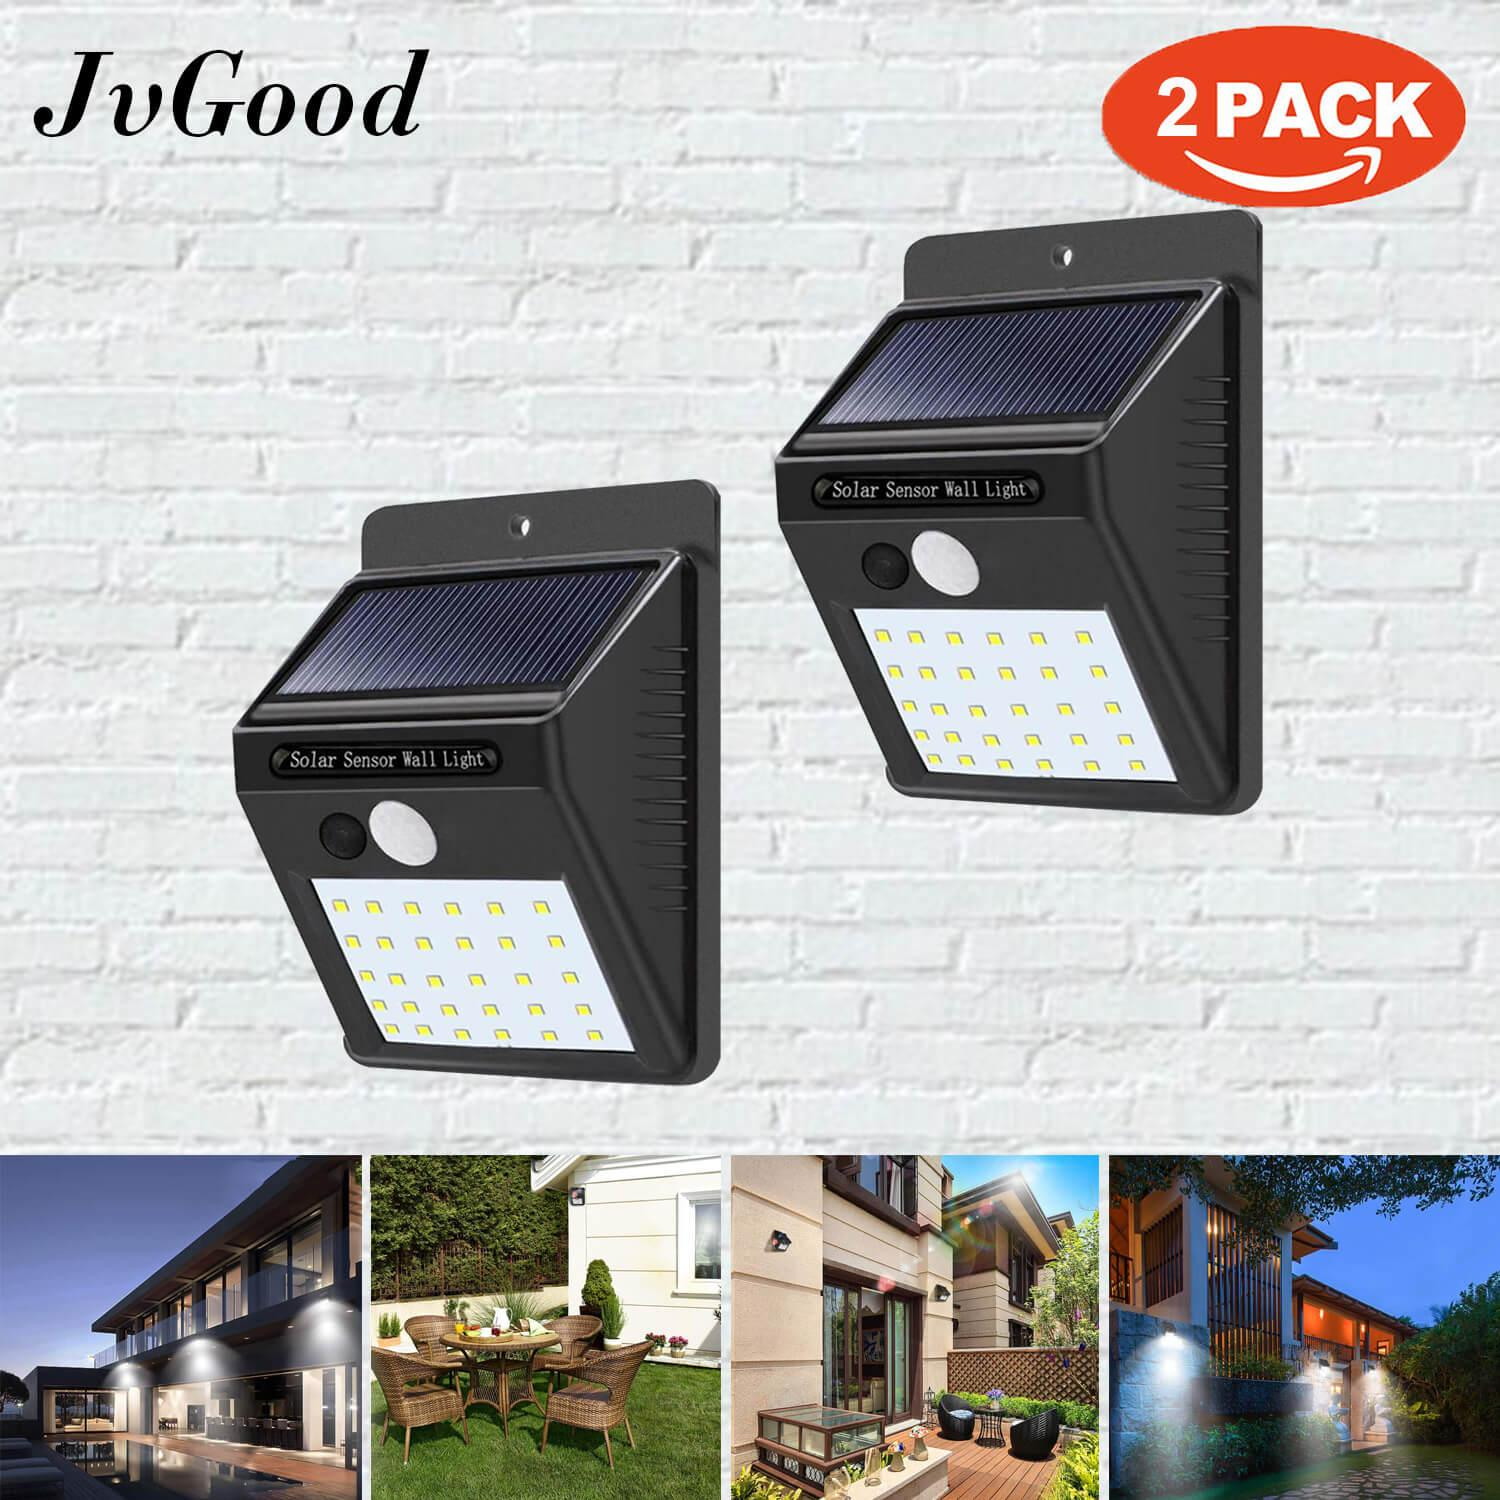 Home Outdoor Lighting Buy At Best Price In Wiring Security Lights Back Deck Jvgood Sensor Solar Wall Light Led Waterproof Powered Motion